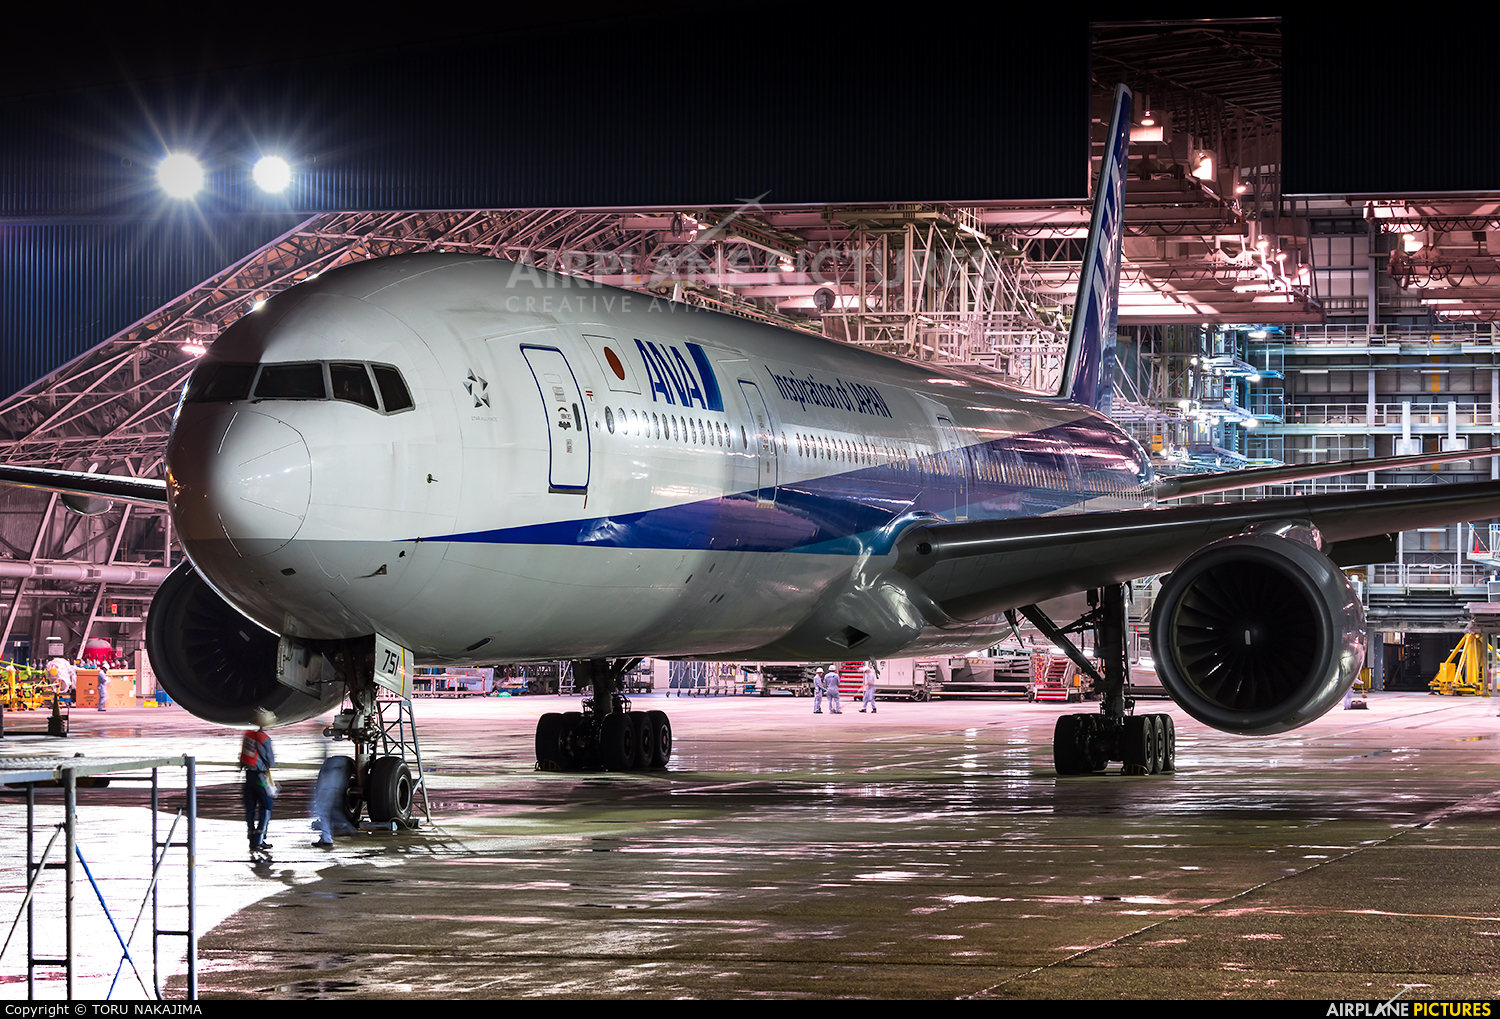 ANA - All Nippon Airways JA751A aircraft at Osaka - Itami Intl